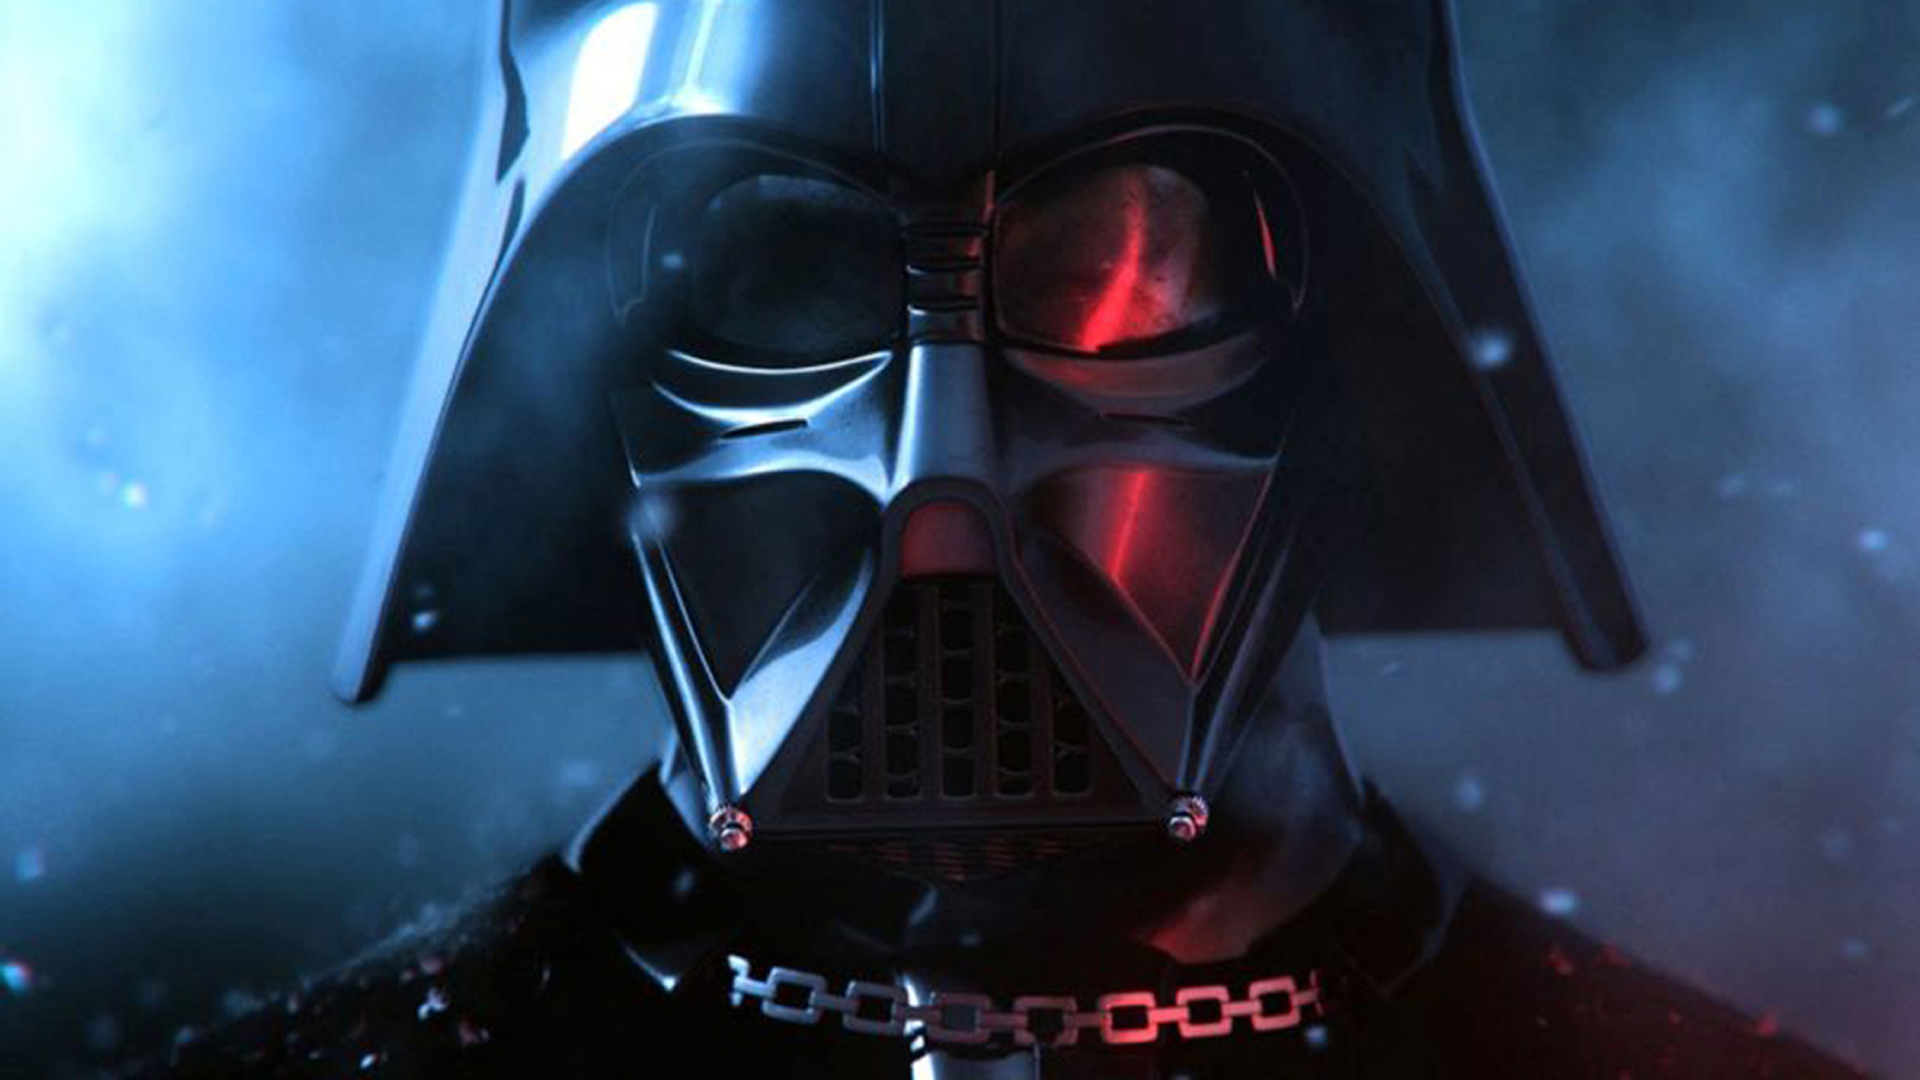 Heavy Rain studio may be working on a Star Wars game